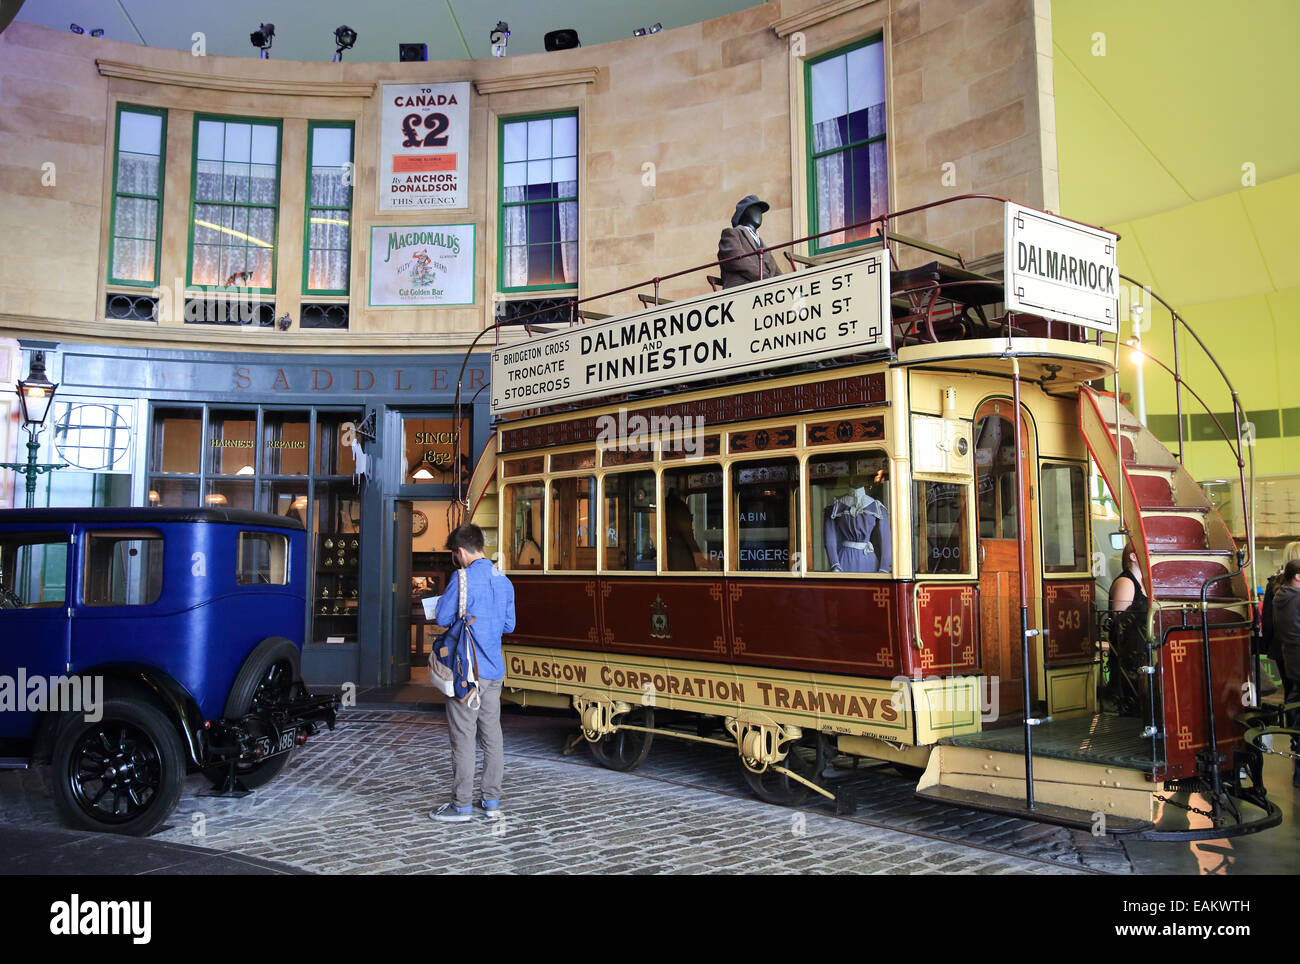 The Glasgow Riverside Transport Museum, in the regeneration area, displaying Glasgow's rich, industrial heritage, - Stock Image